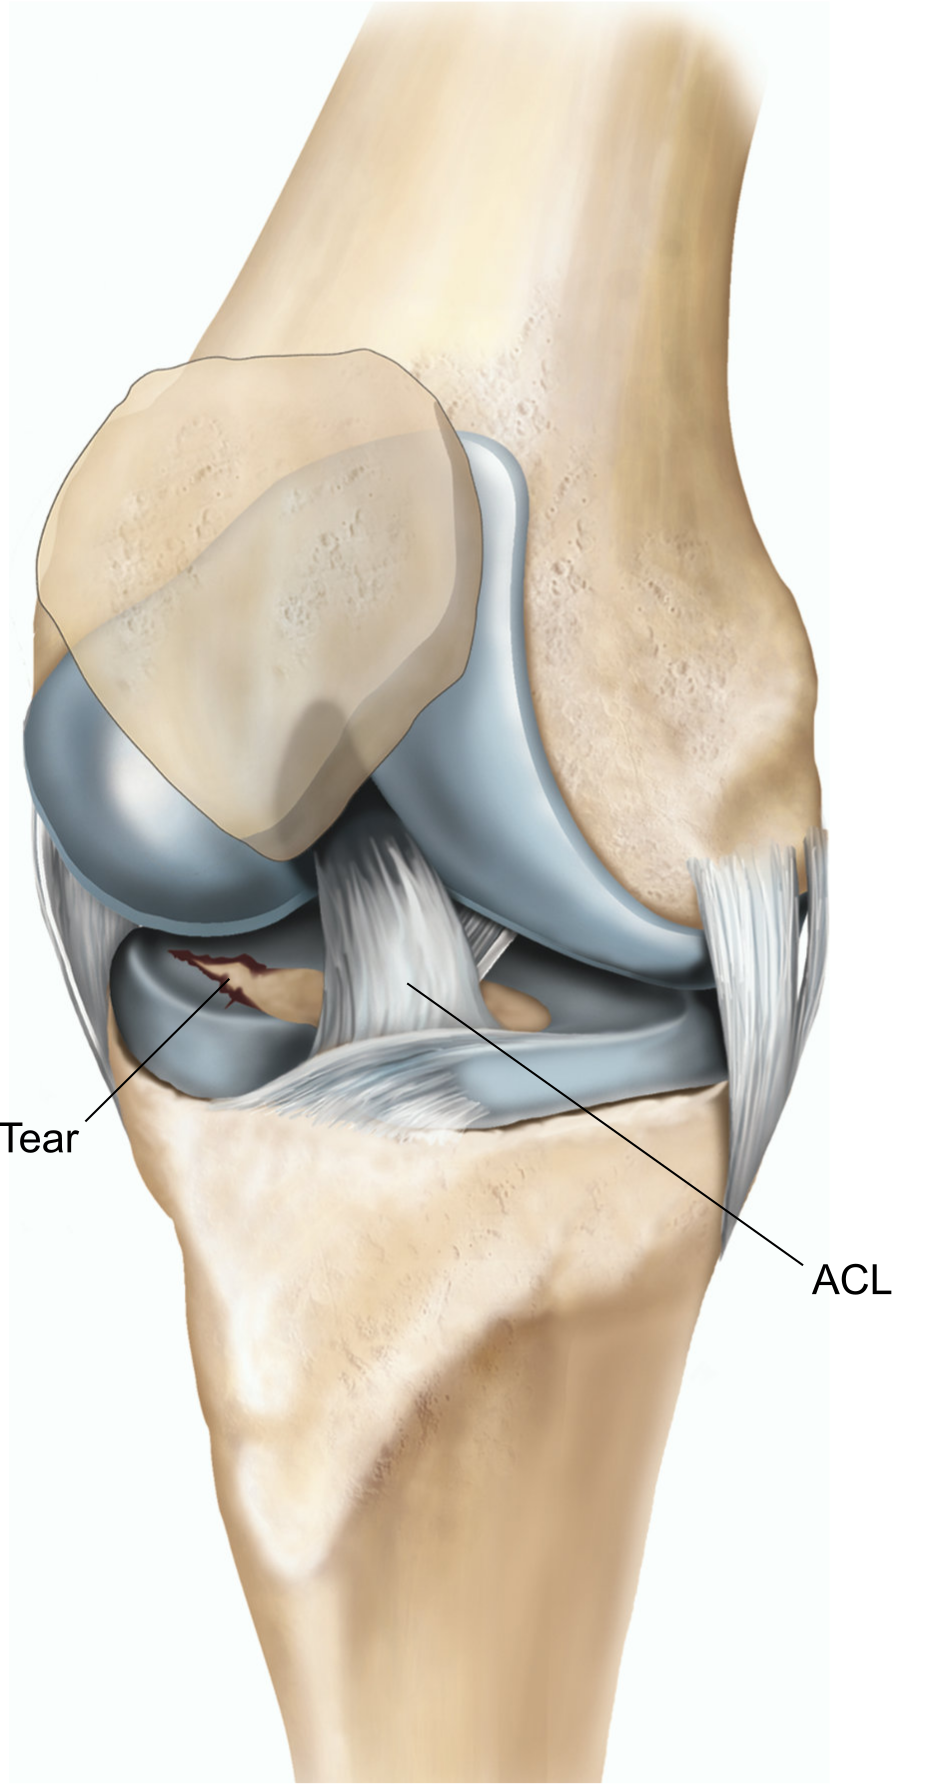 A right knee with a tear in the lateral meniscus